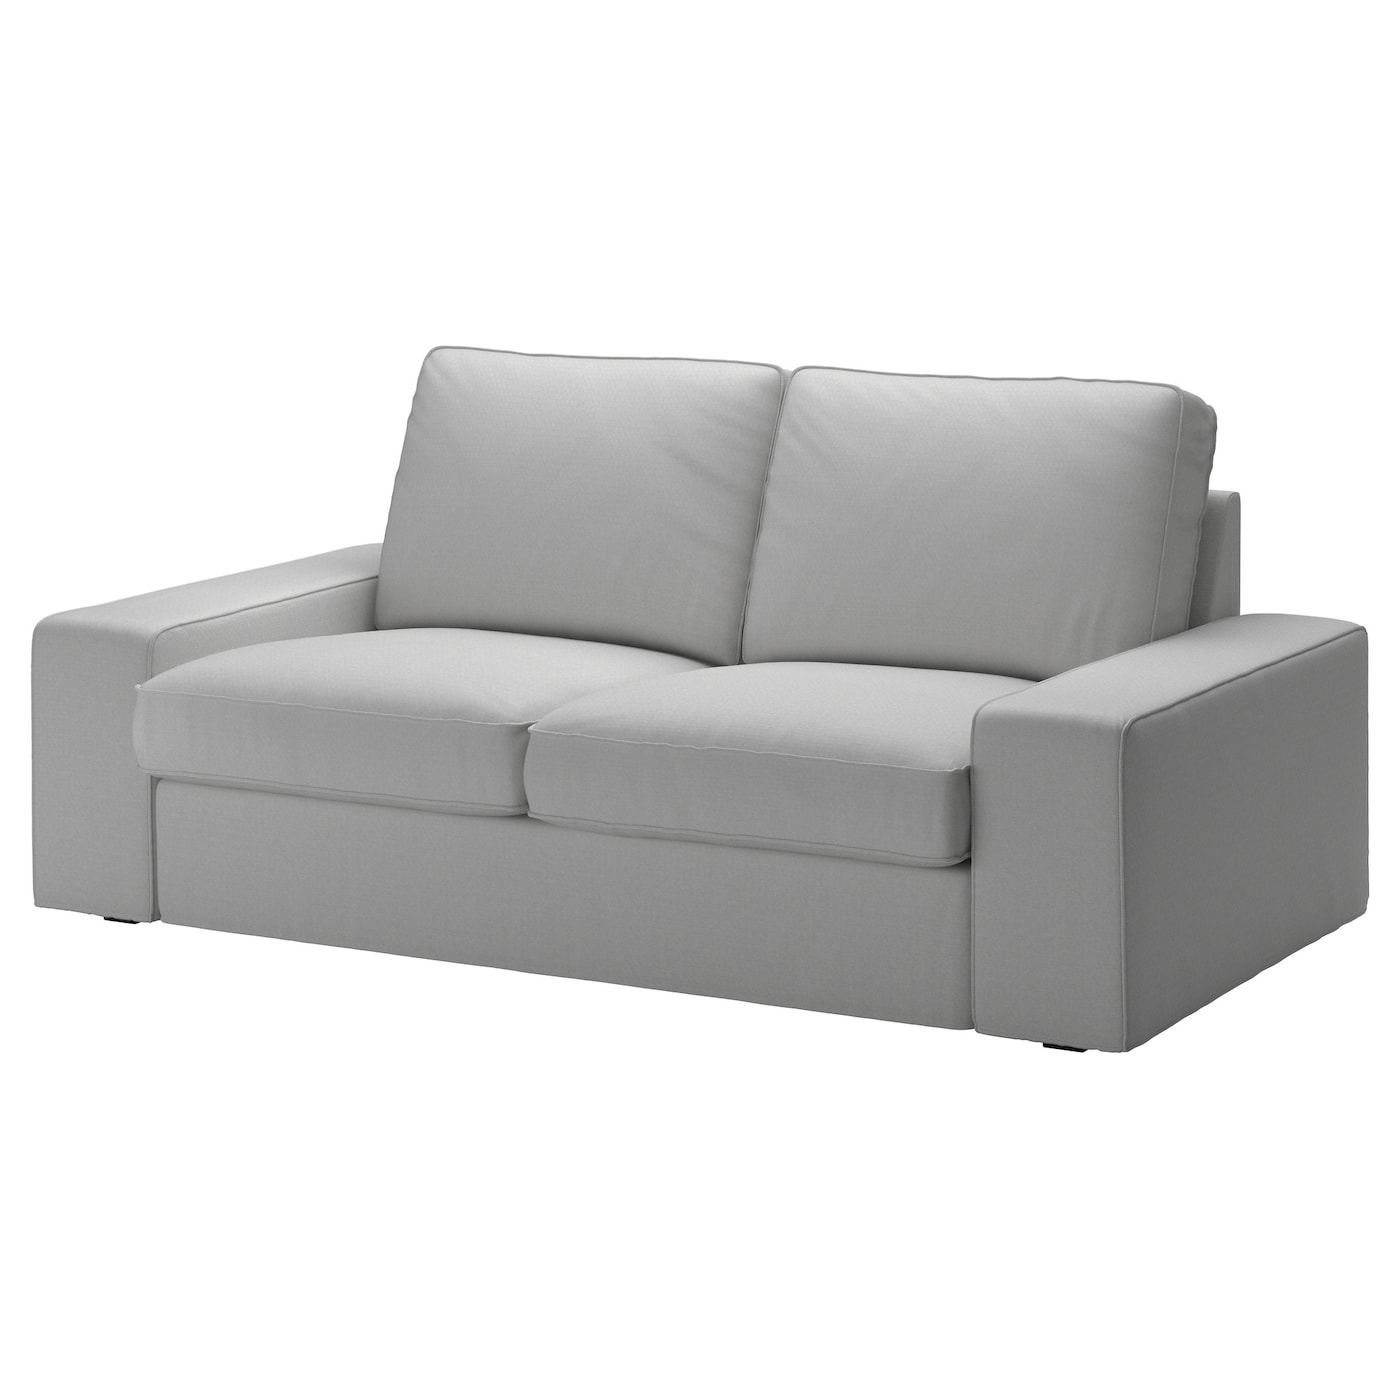 2er sofa grau great full size of besten ikea sessel isunda grau delsbo er sofa mit rcamiere. Black Bedroom Furniture Sets. Home Design Ideas